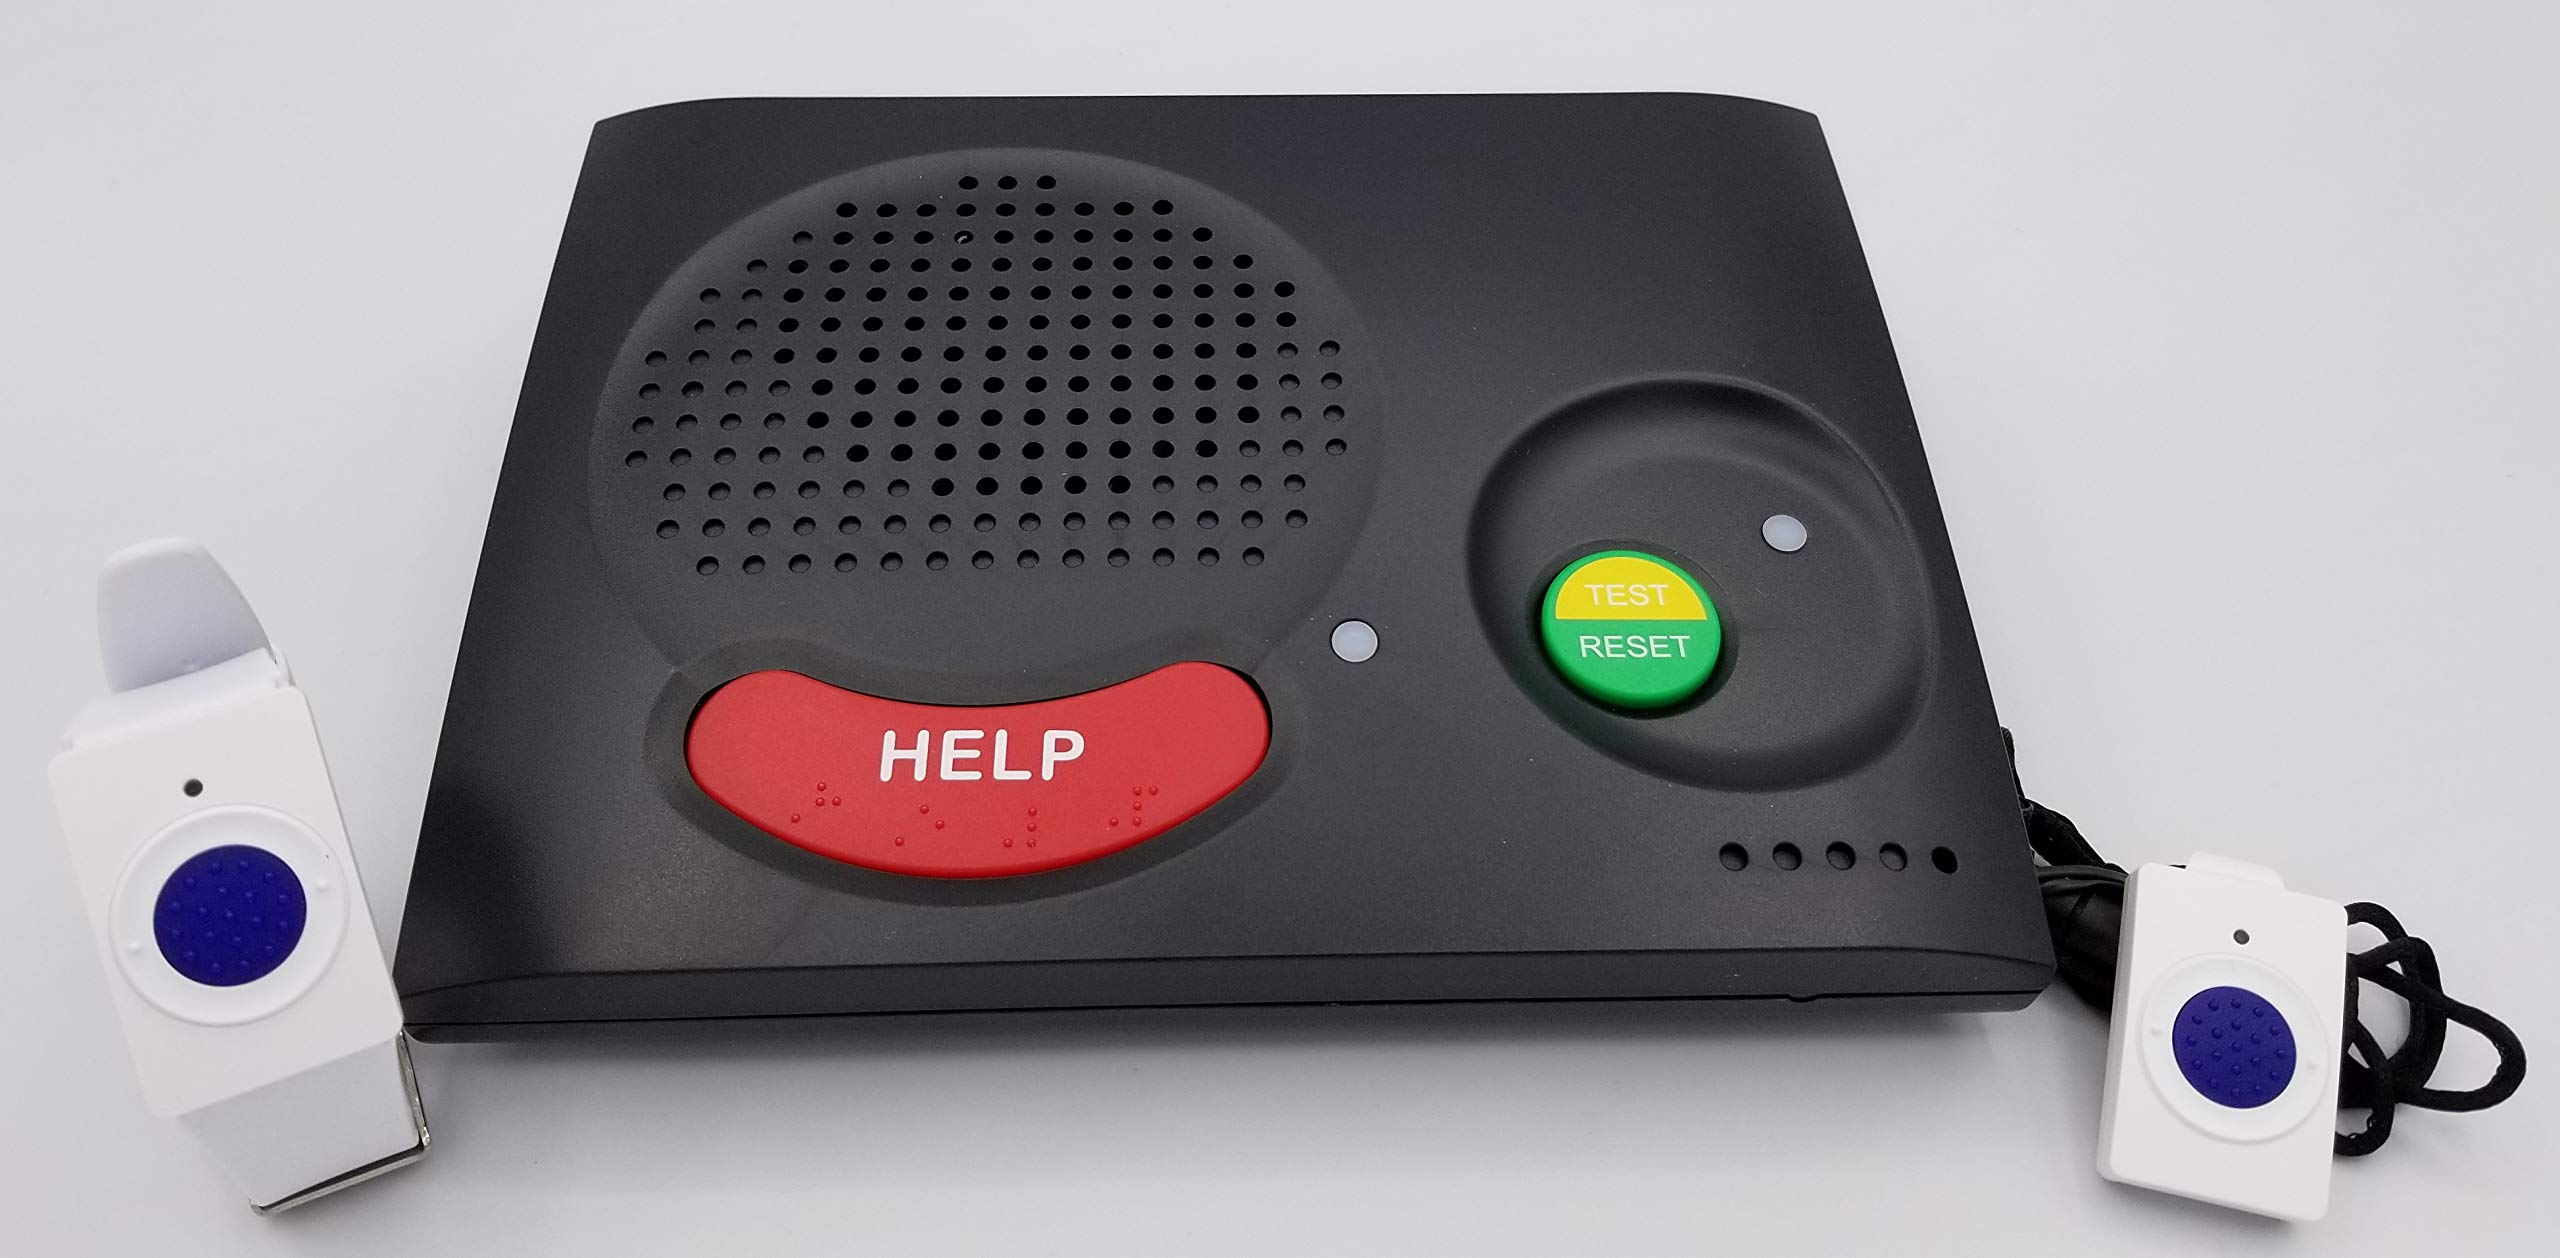 We Send Help Monitored Home Medical Alert System with Up to 2000FT Range Works in and Around The Home. 4G LTE Cellular Requires No Phone Line 1st Month of 24/7 Monitoring Service Free